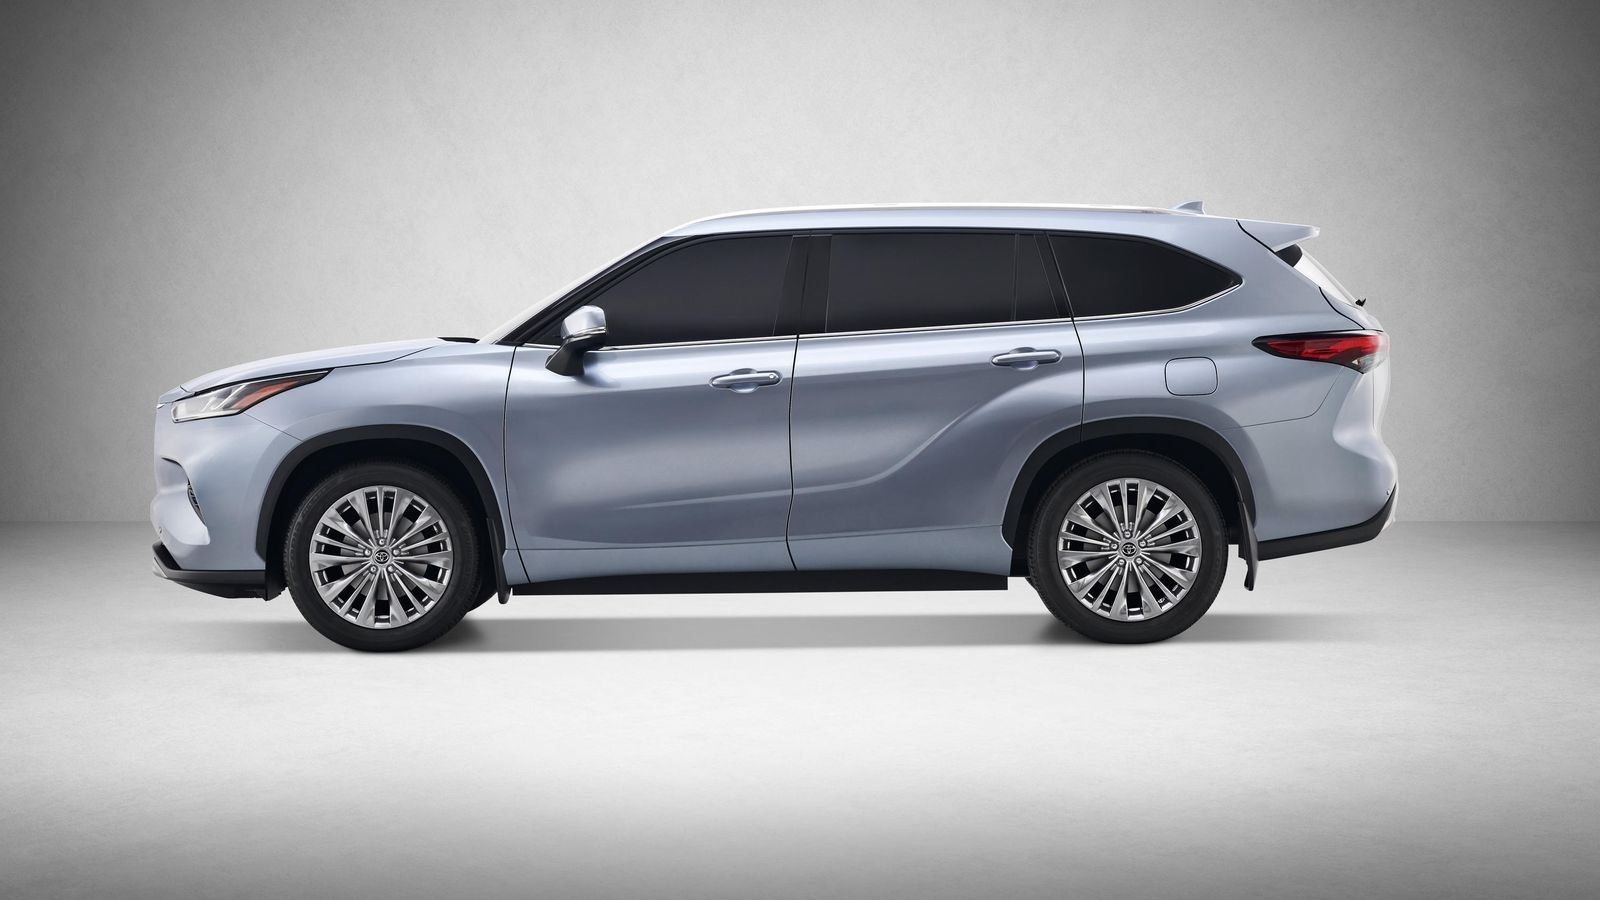 2020 Toyota Highlander Vs Explorer Pilot Traverse And Release Date Price And Review Toyota Highlander Toyota Highlander Hybrid Toyota